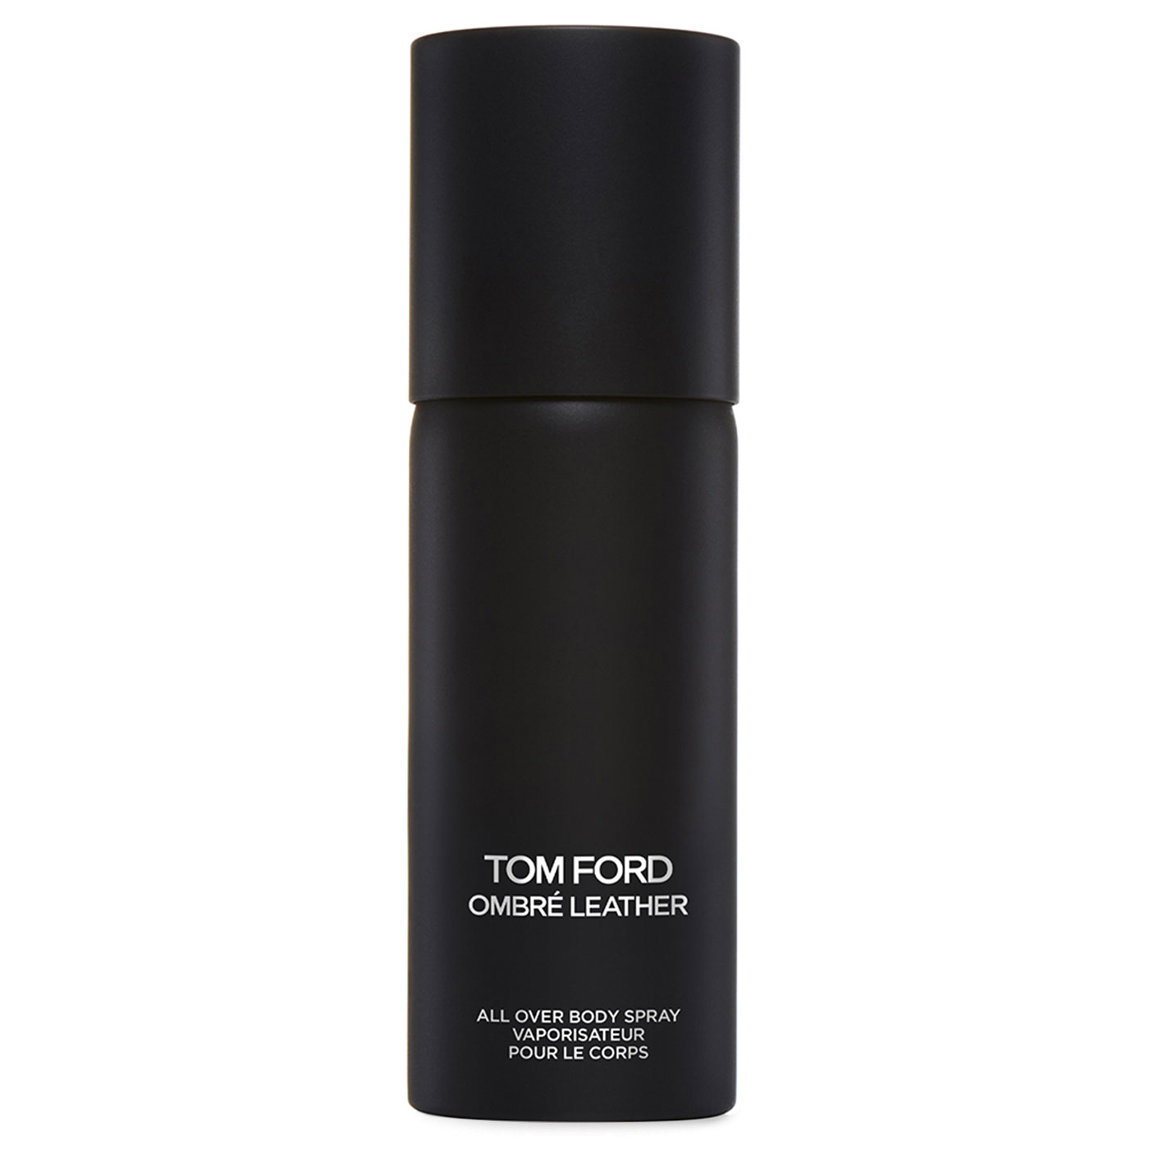 TOM FORD Ombré Leather All Over Body Spray alternative view 1 - product swatch.